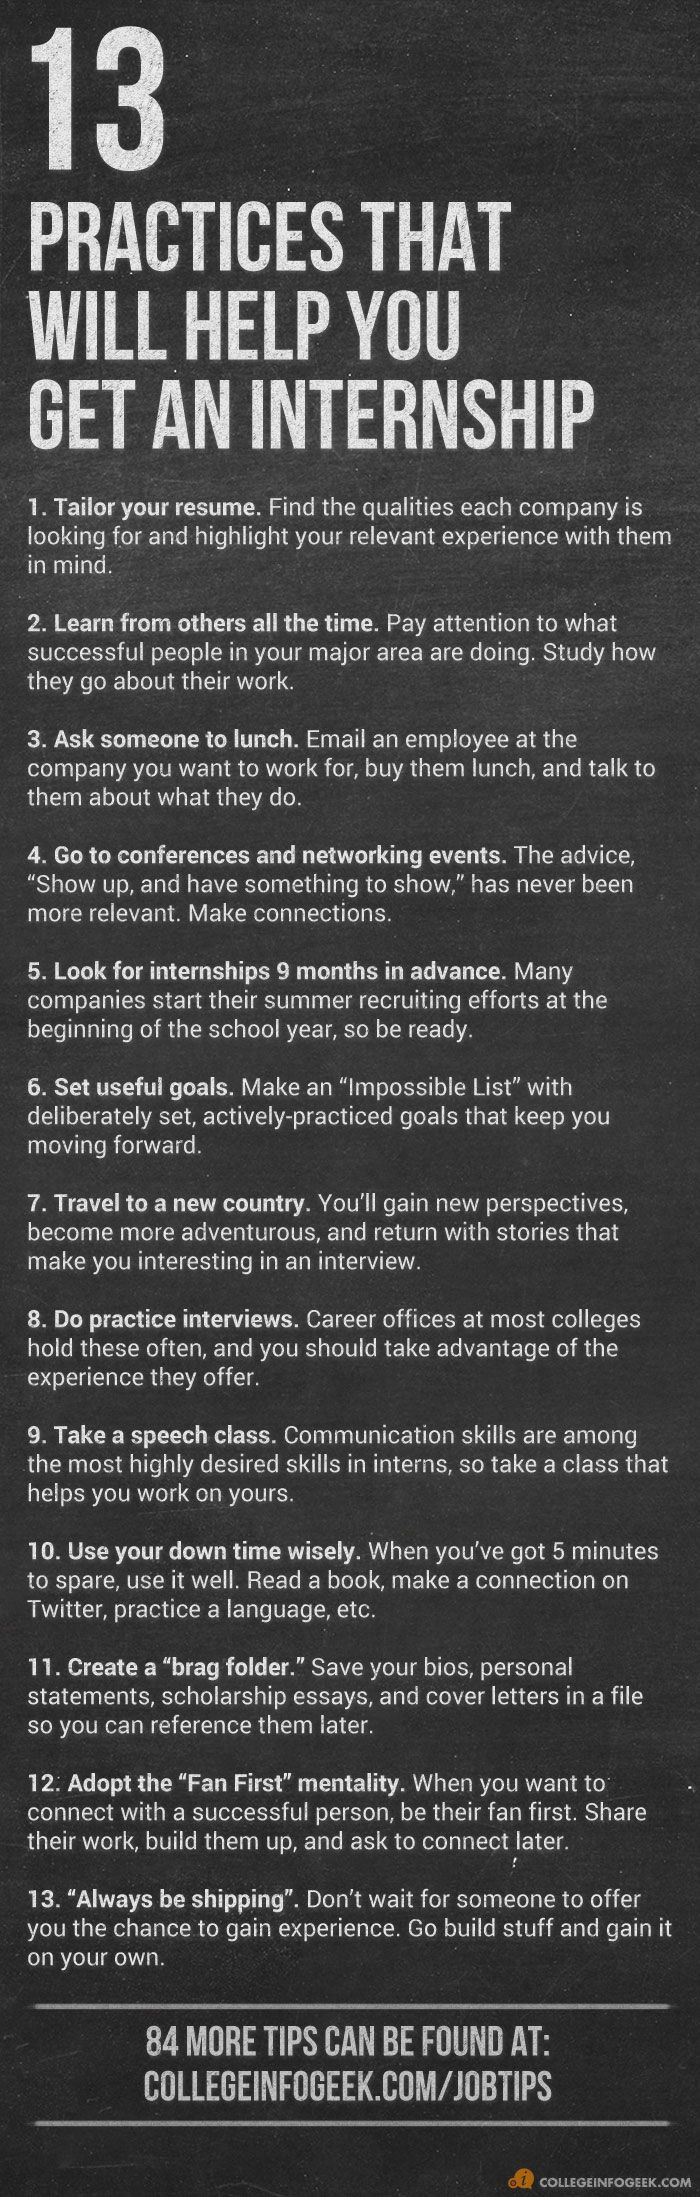 13 tips that will help with your #college #internship search! (84 more on the article)